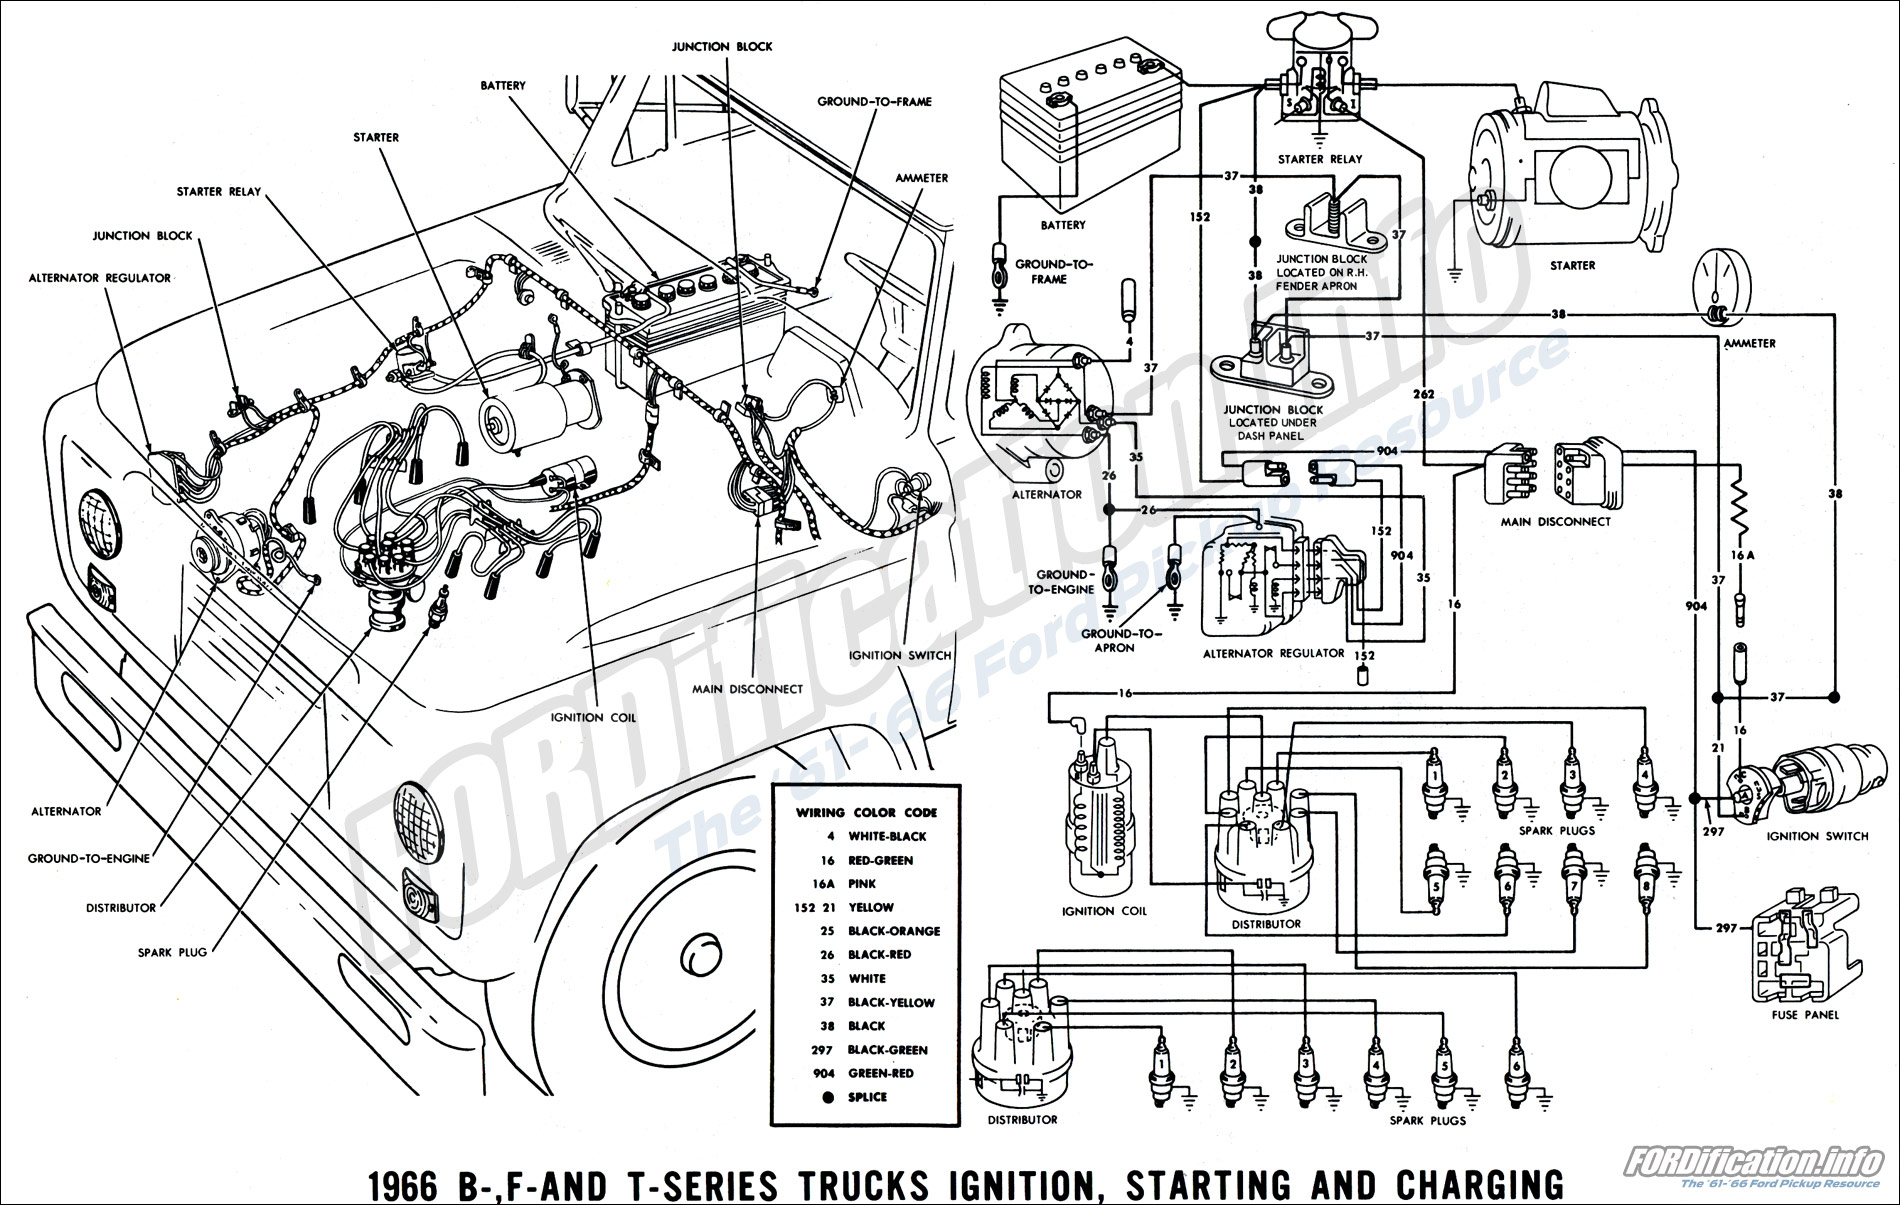 [SCHEMATICS_48IU]  1966 Ford Truck Wiring Diagrams - FORDification.info - The '61-'66 Ford  Pickup Resource | 1966 Ford Truck Wiring Diagram |  | FORDification.info